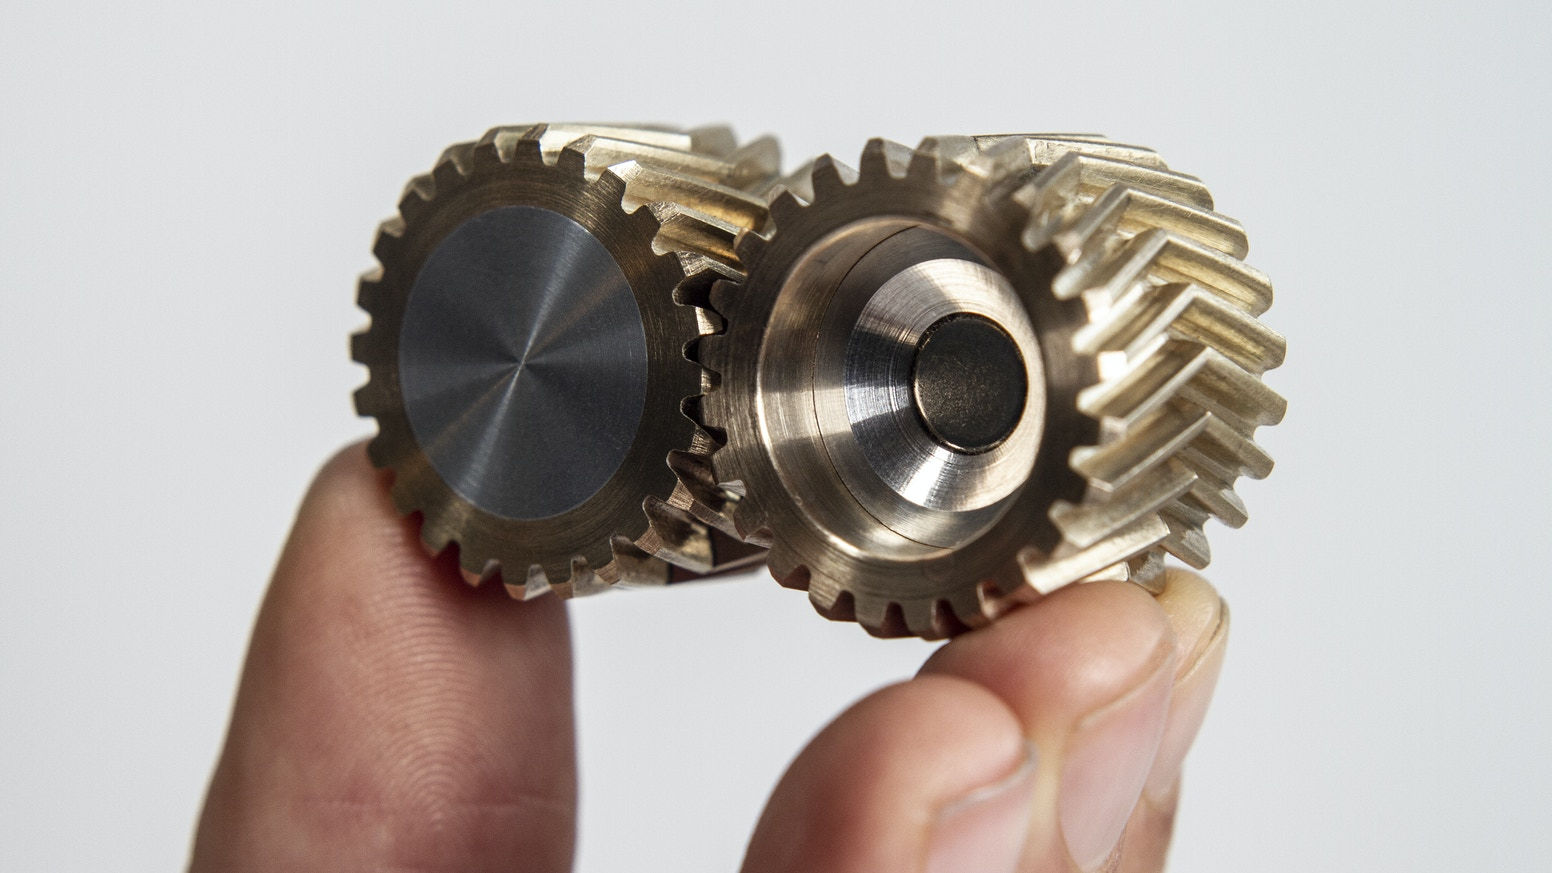 Solid brass and aluminium herringbone-gear fidget toy, made by engineers, for engineers. Now available on Indiegogo! Click below to get yours!